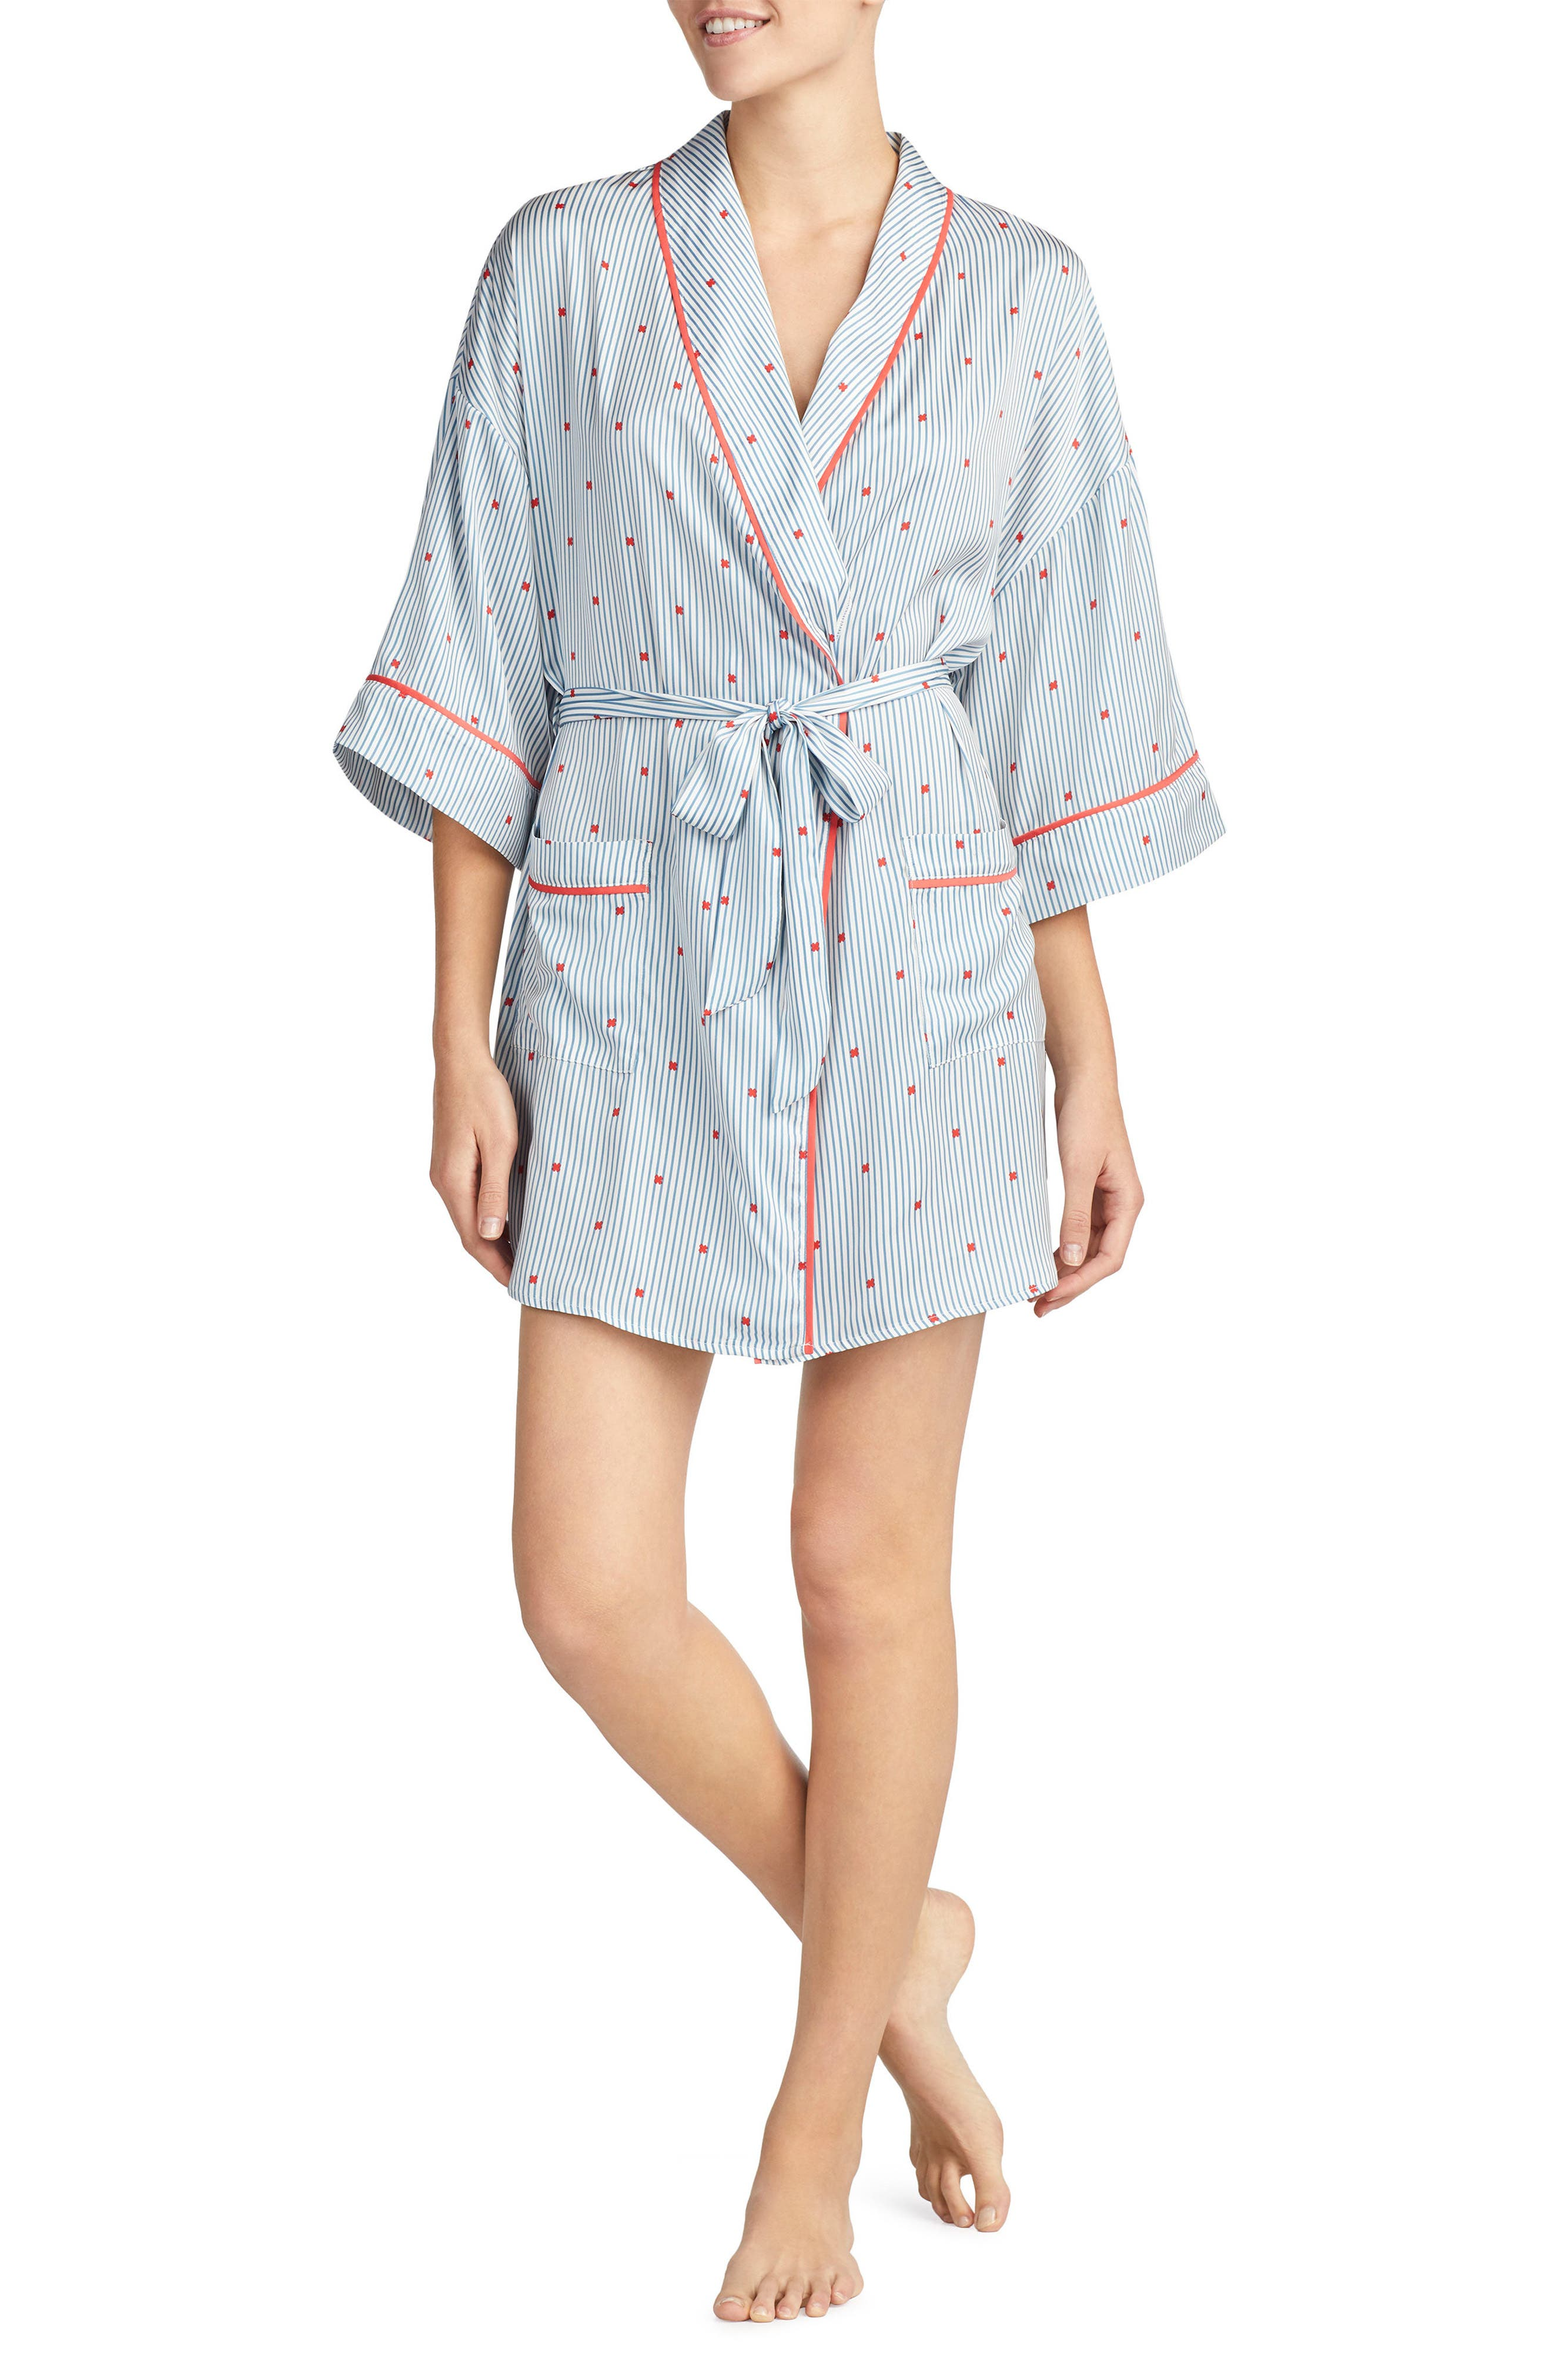 Room Service Satin Short Robe (Nordstrom Exclusive)